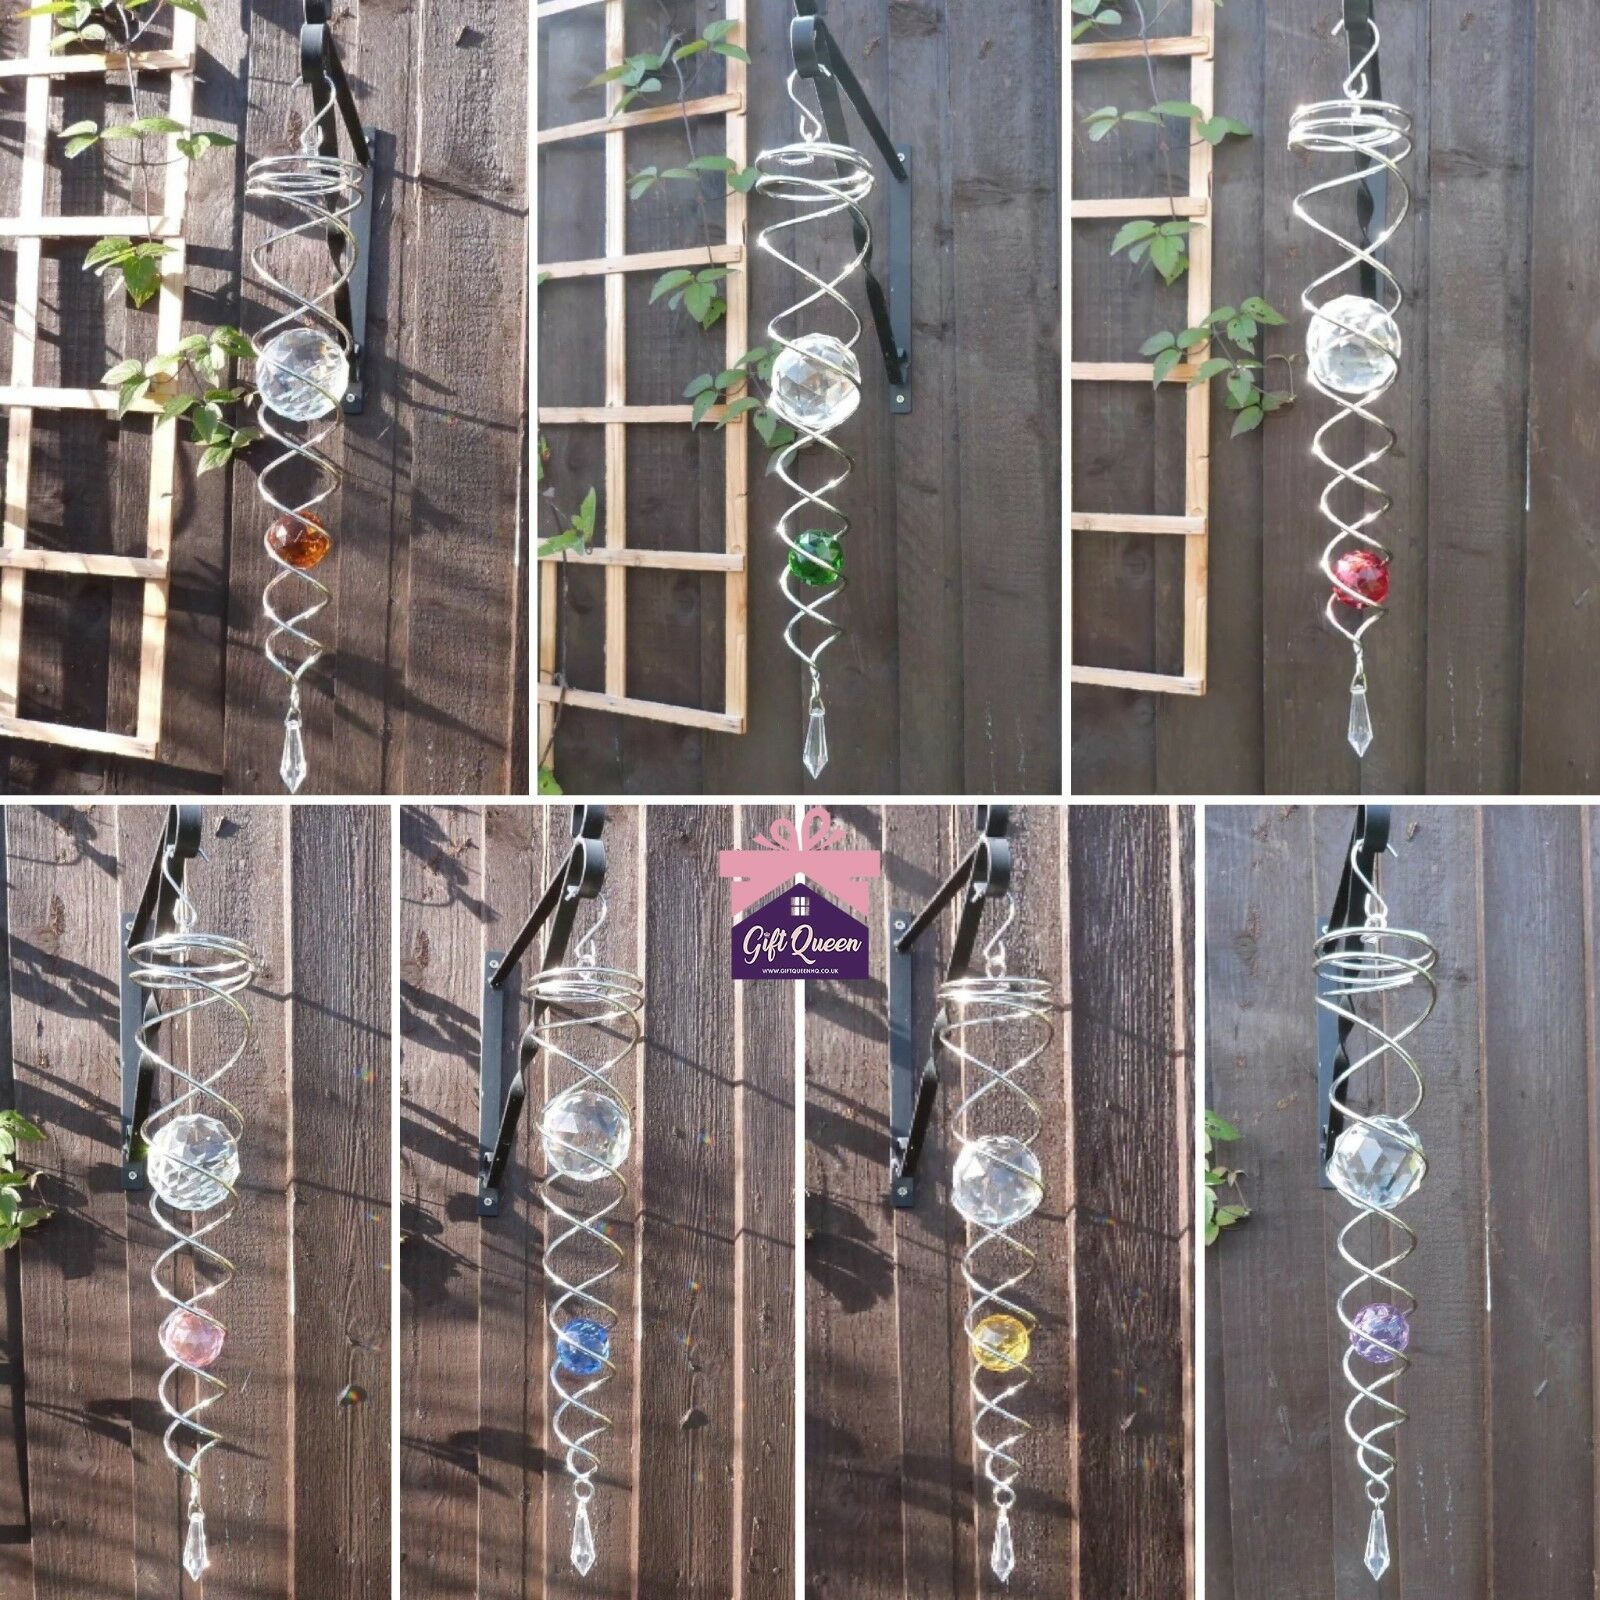 SILVER CRYSTAL TAIL TWISTER Accessory to Wind Spinner Stainless Home Garden NEW